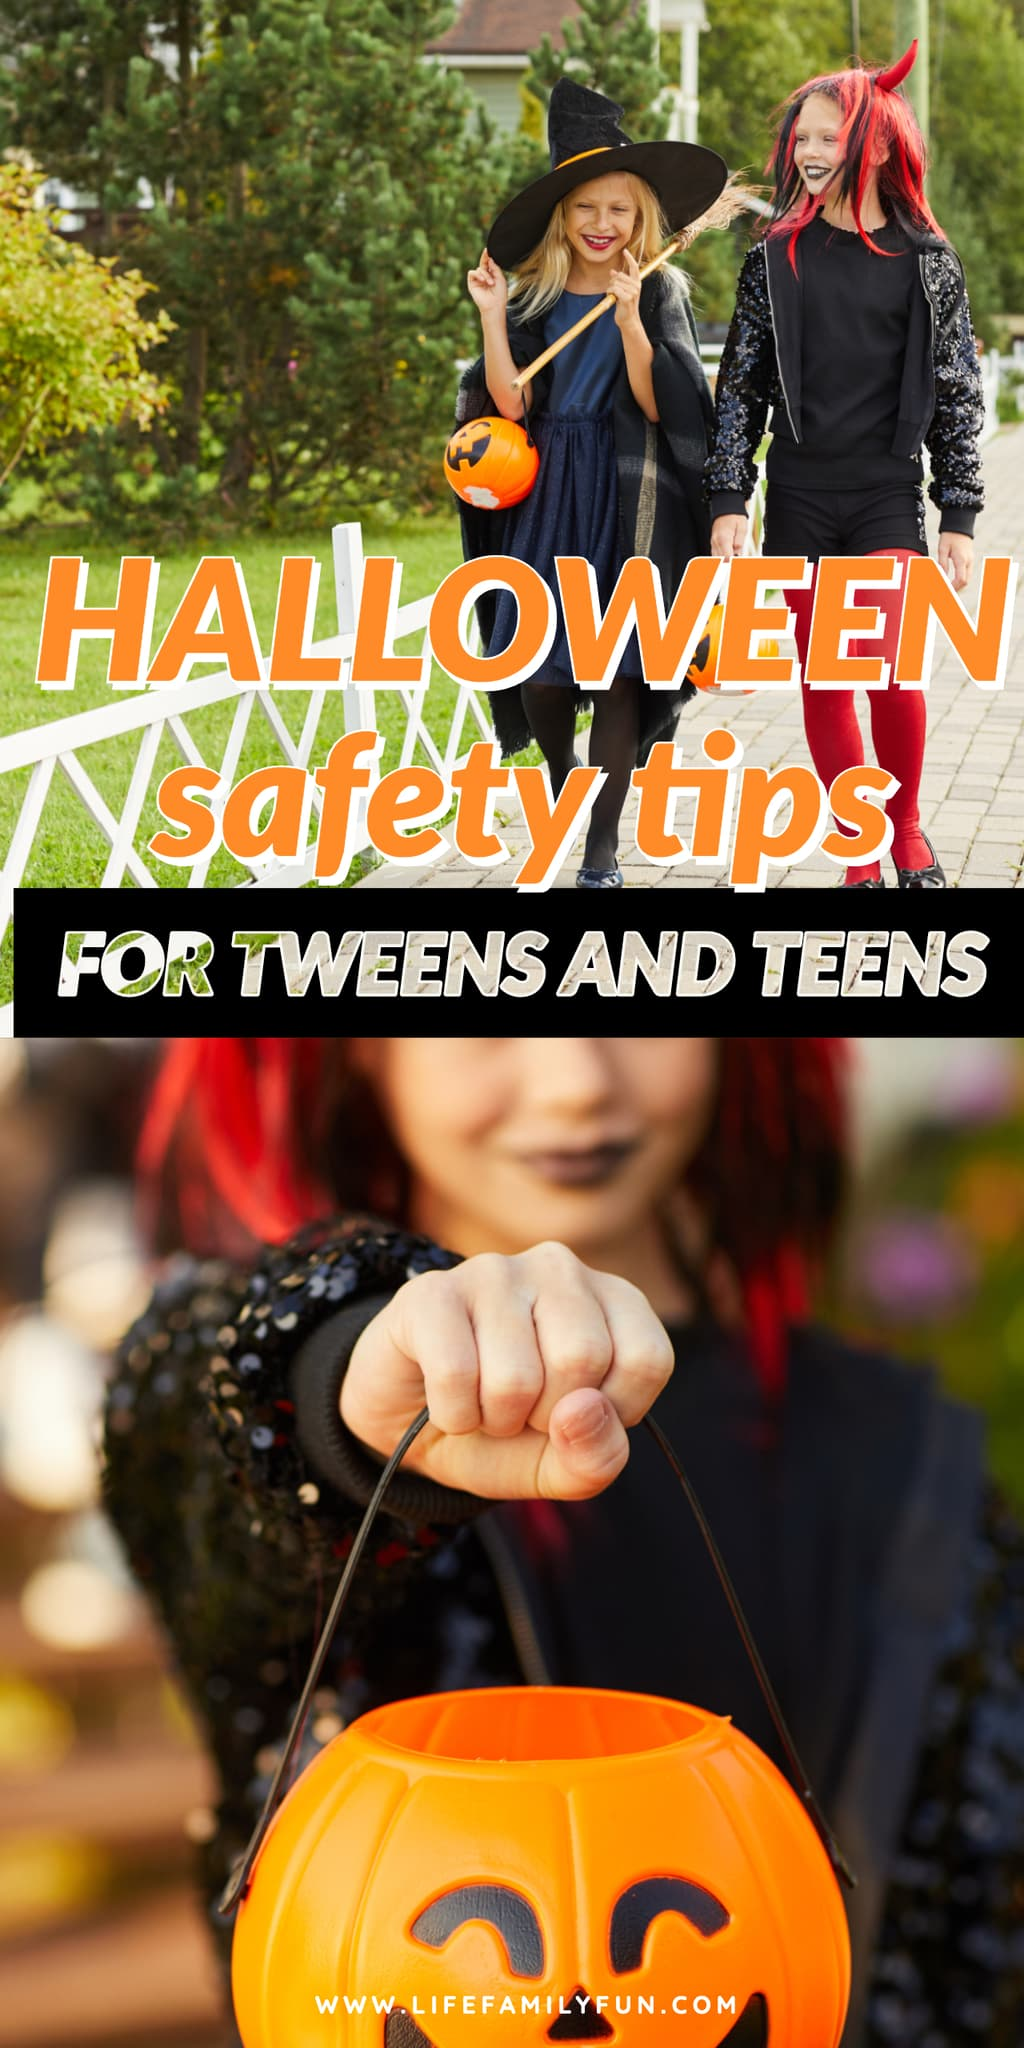 Halloween safety tips for tweens and teens